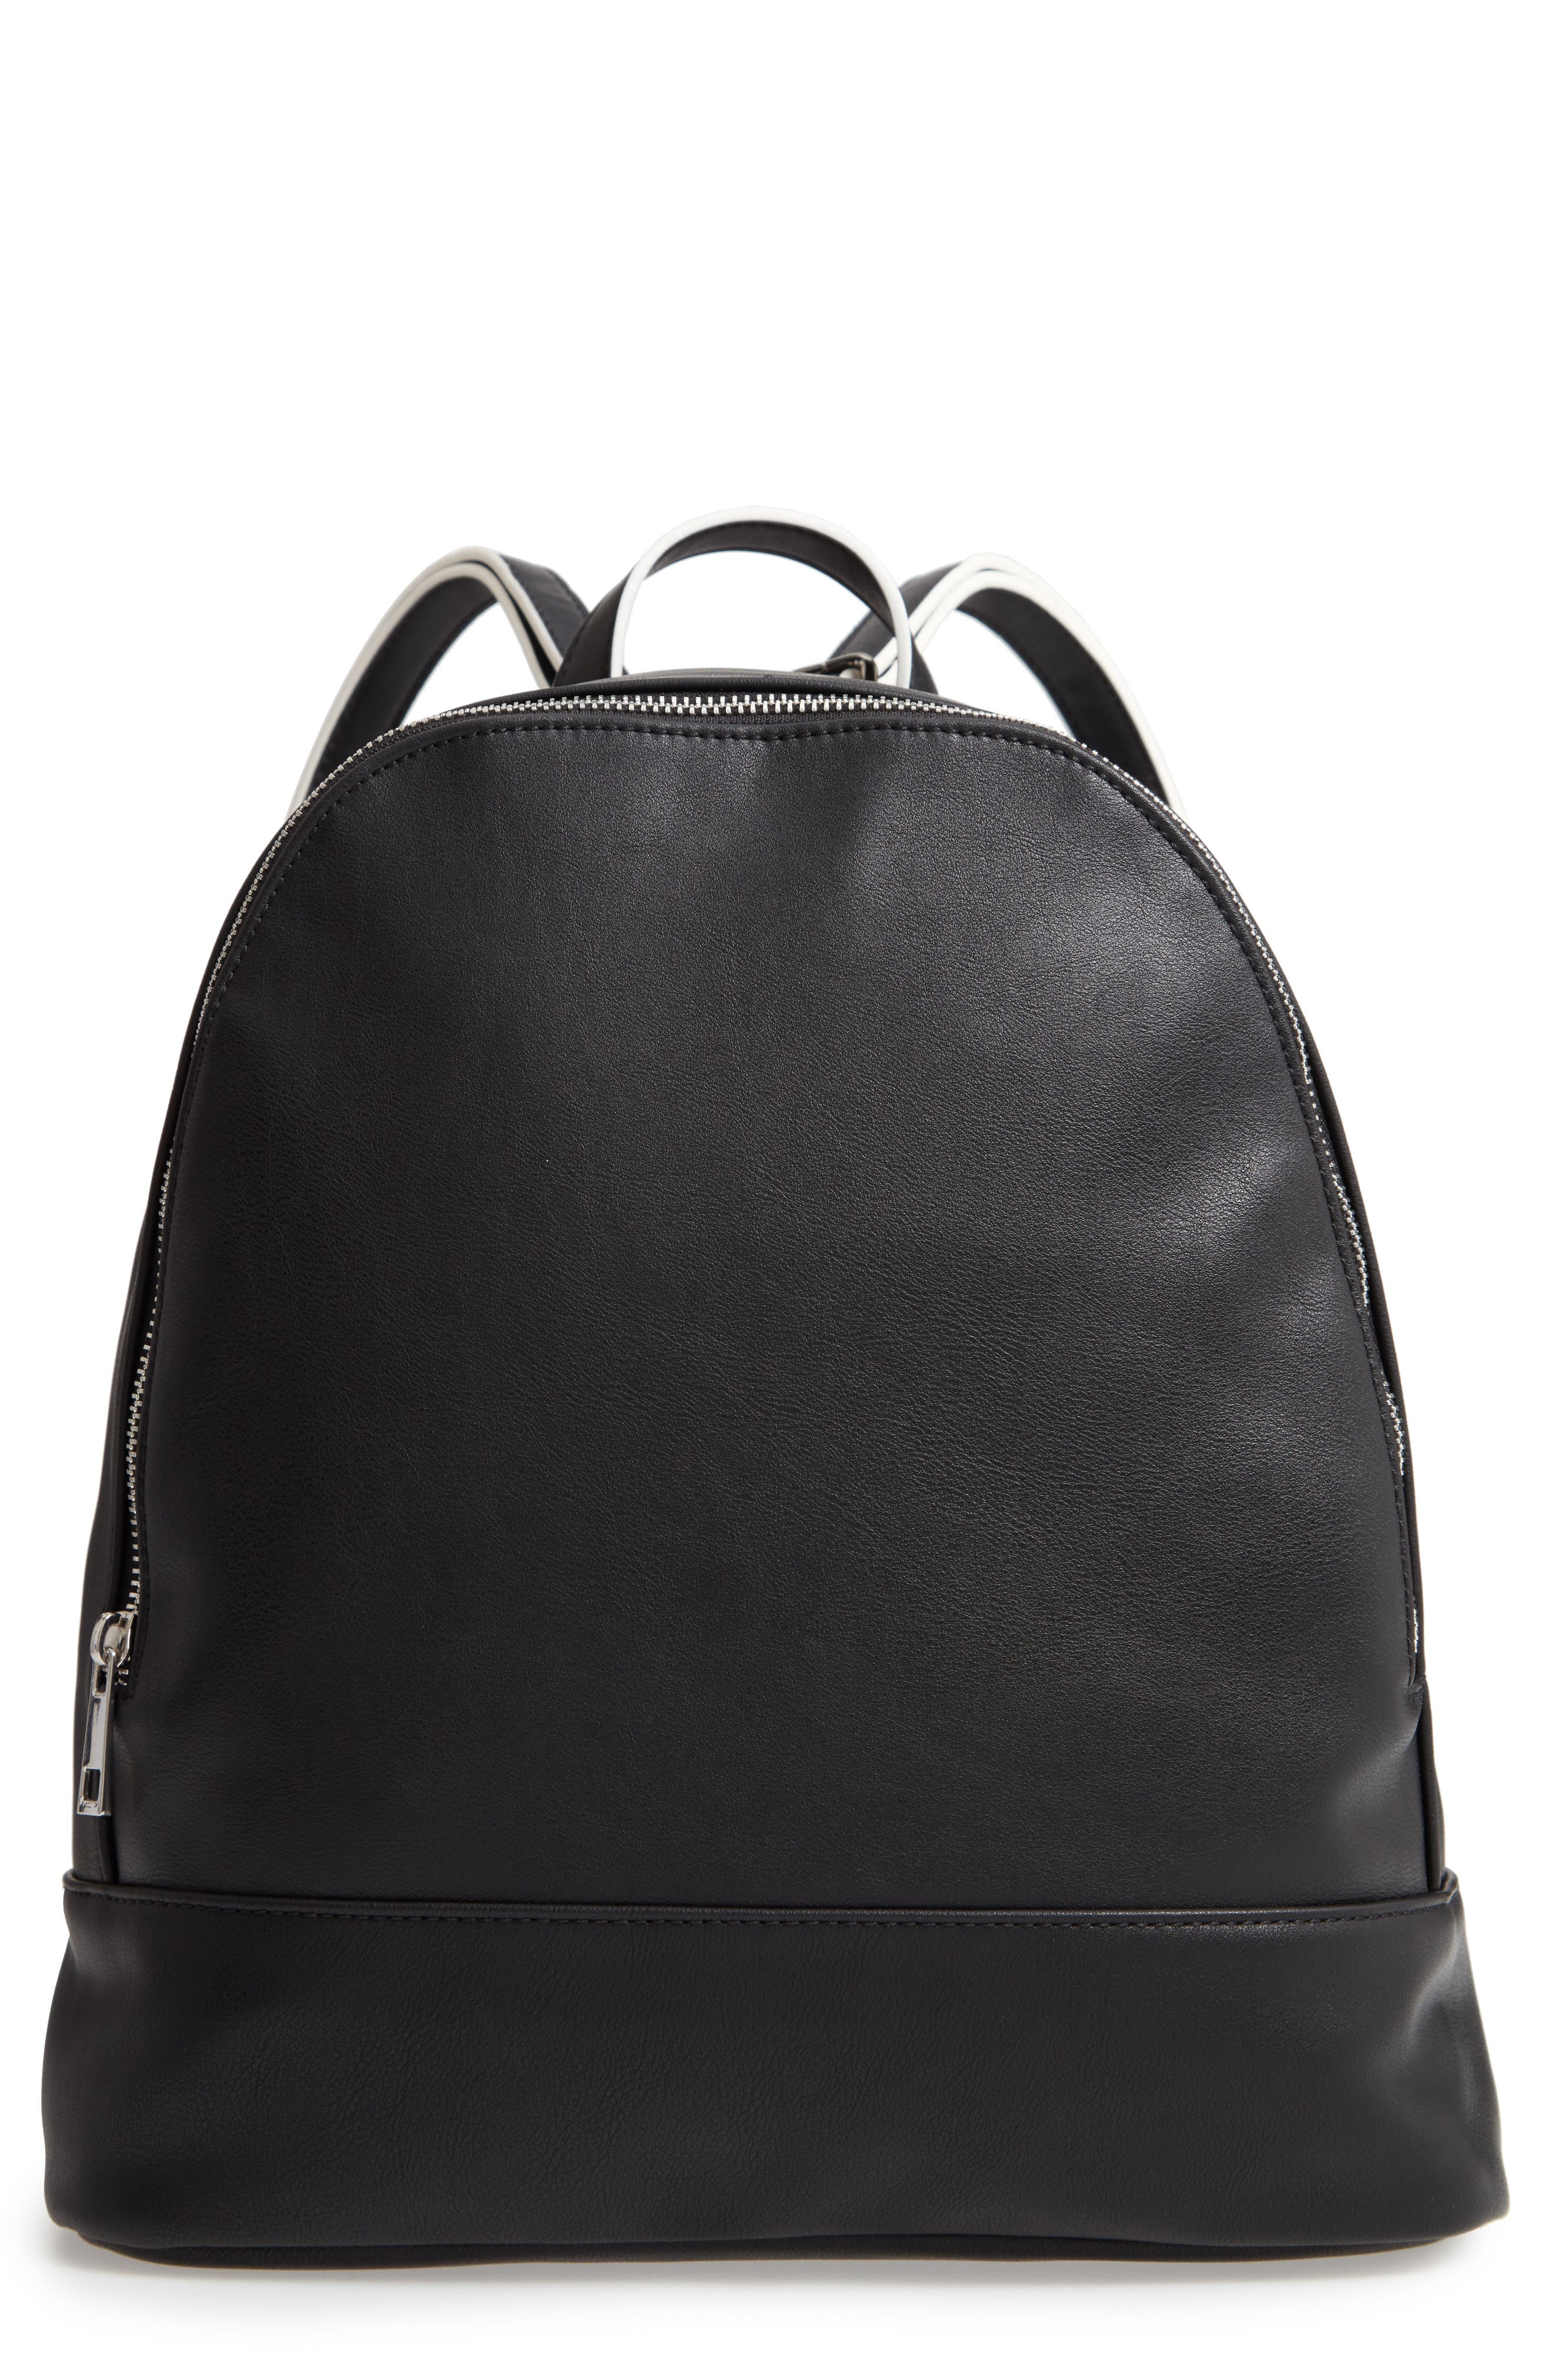 SOLE SOCIETY,                             Haili Faux Leather Backpack,                             Main thumbnail 1, color,                             001